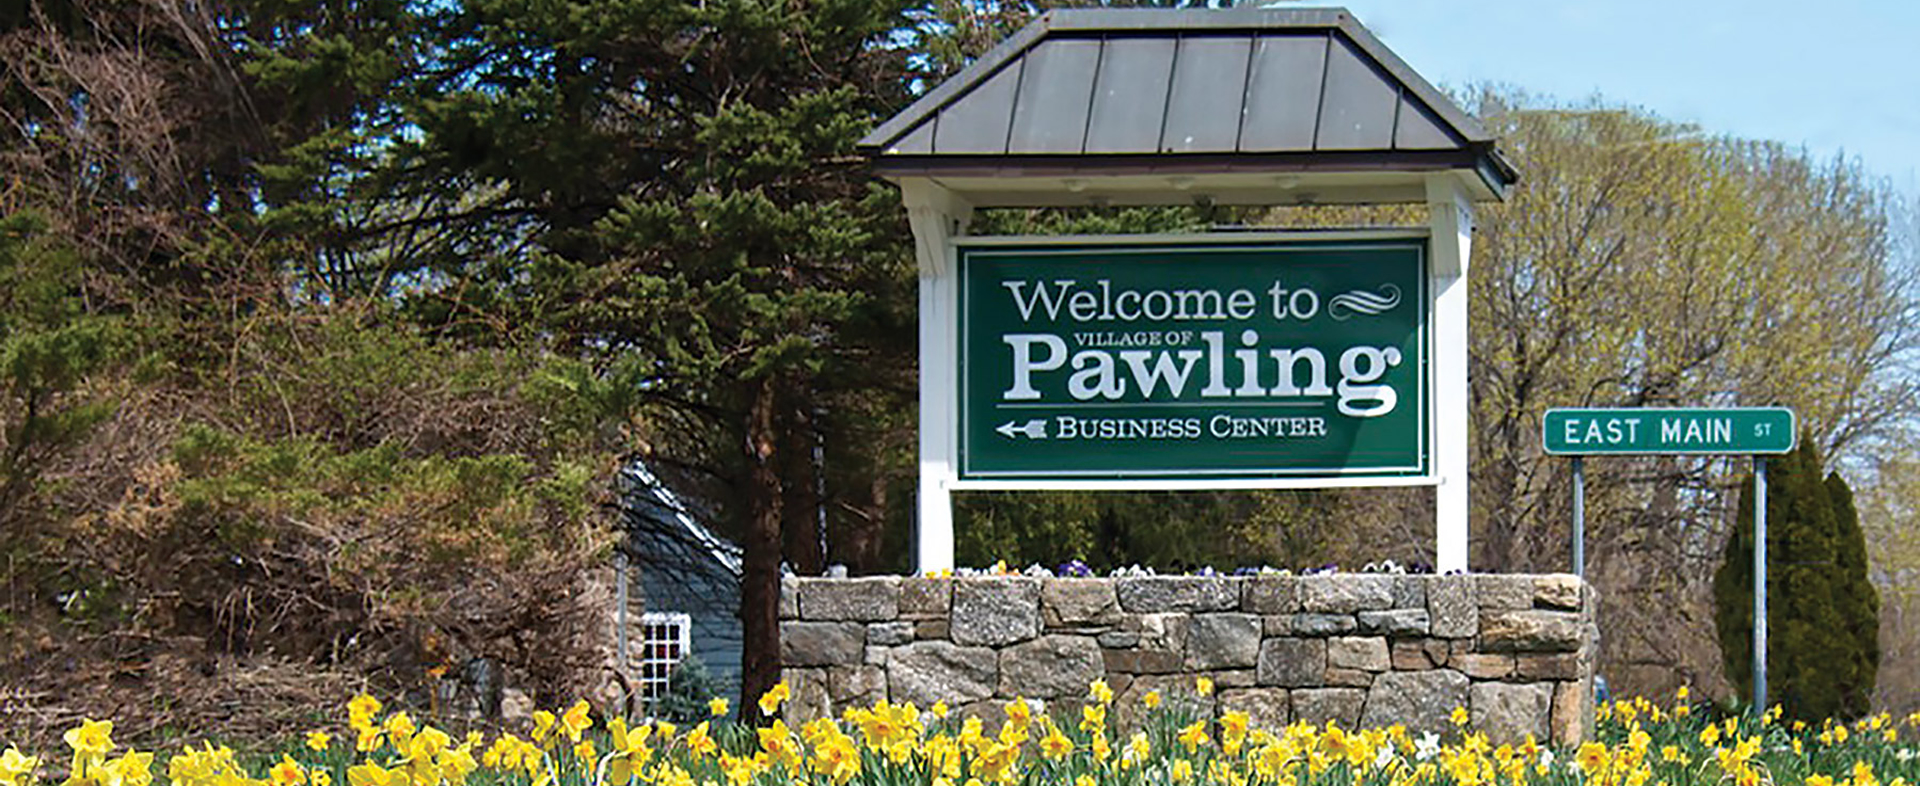 Pawling Chamber of Commerce Community